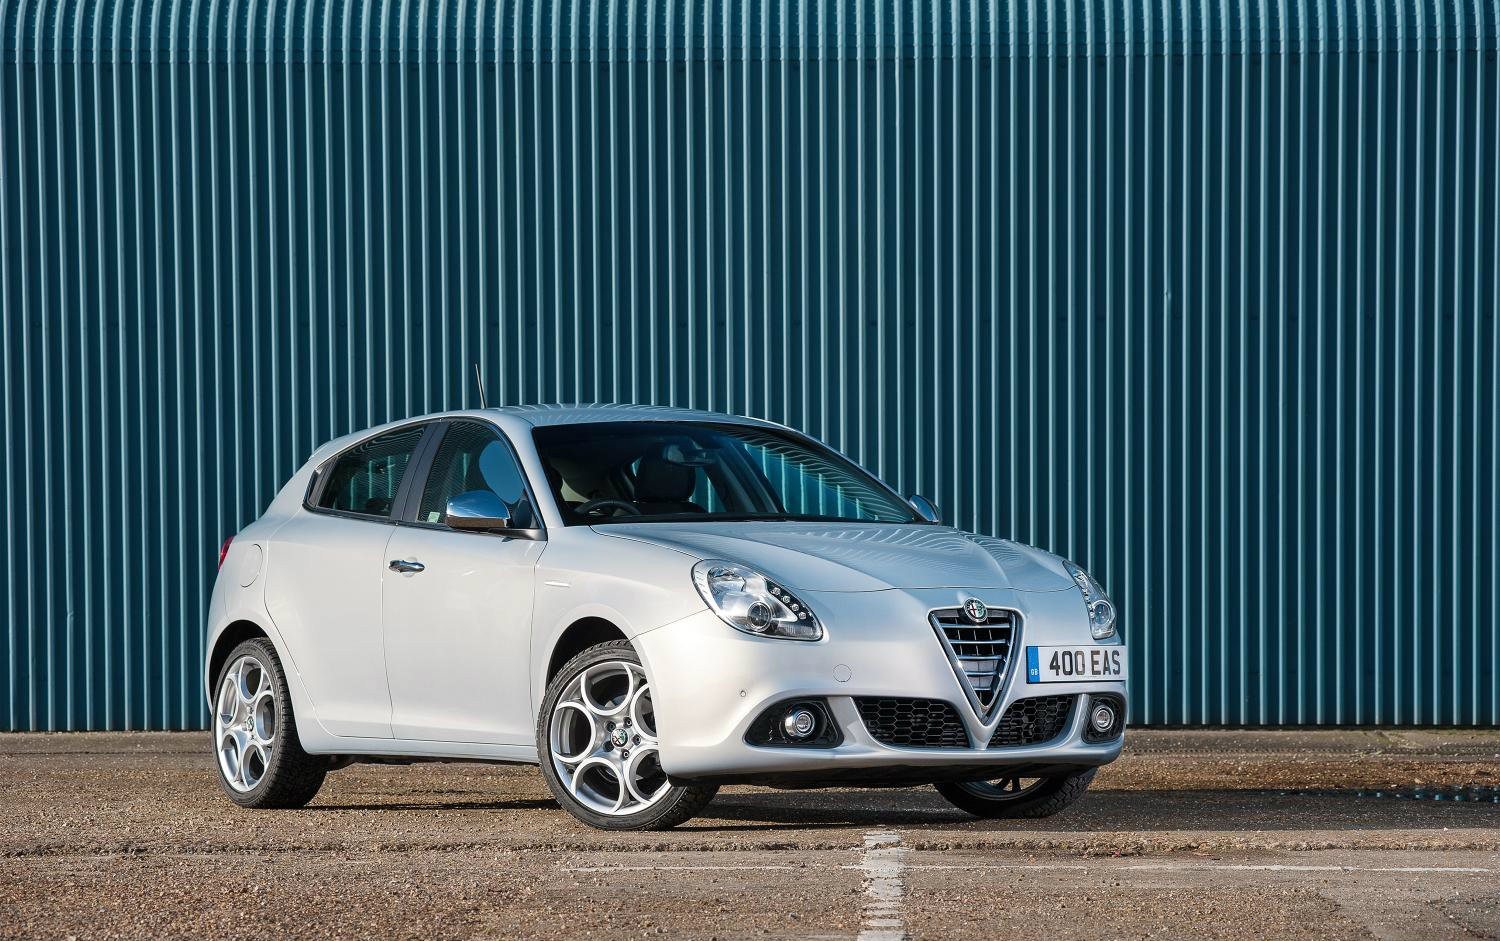 Alfa romeo giulietta business edition alfa romeo giulietta business edition